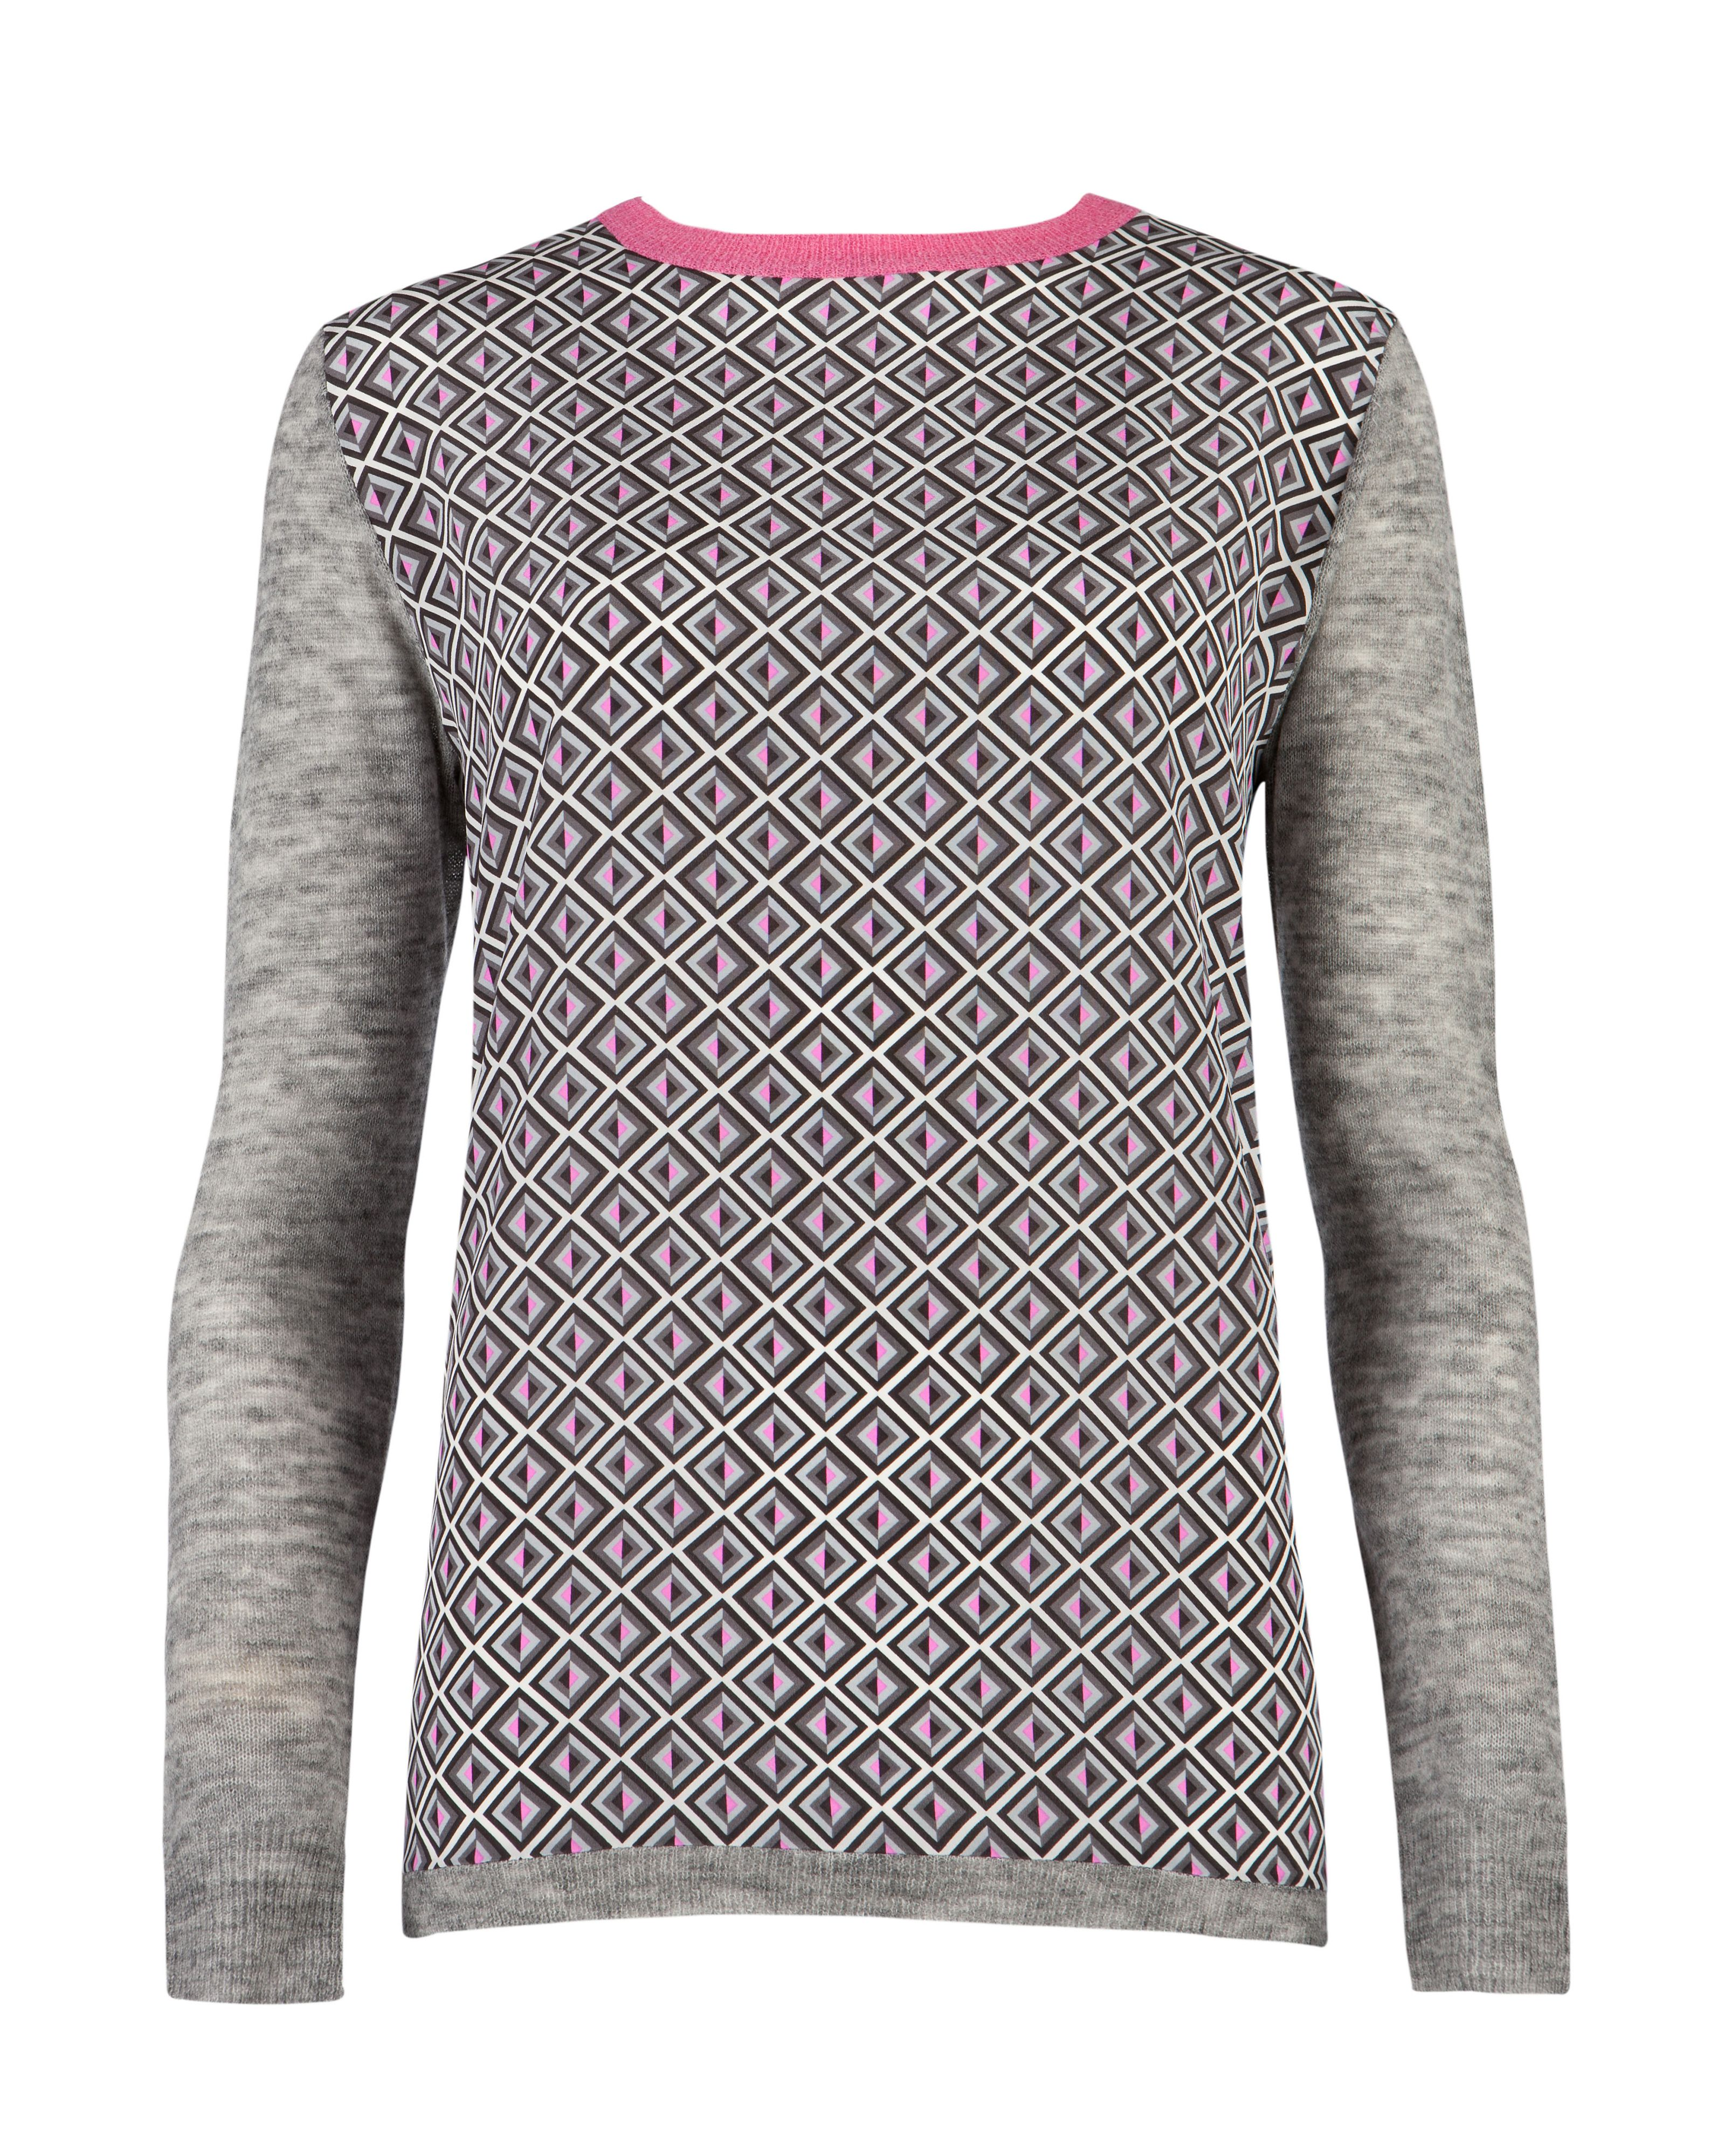 Amberly geo print knit